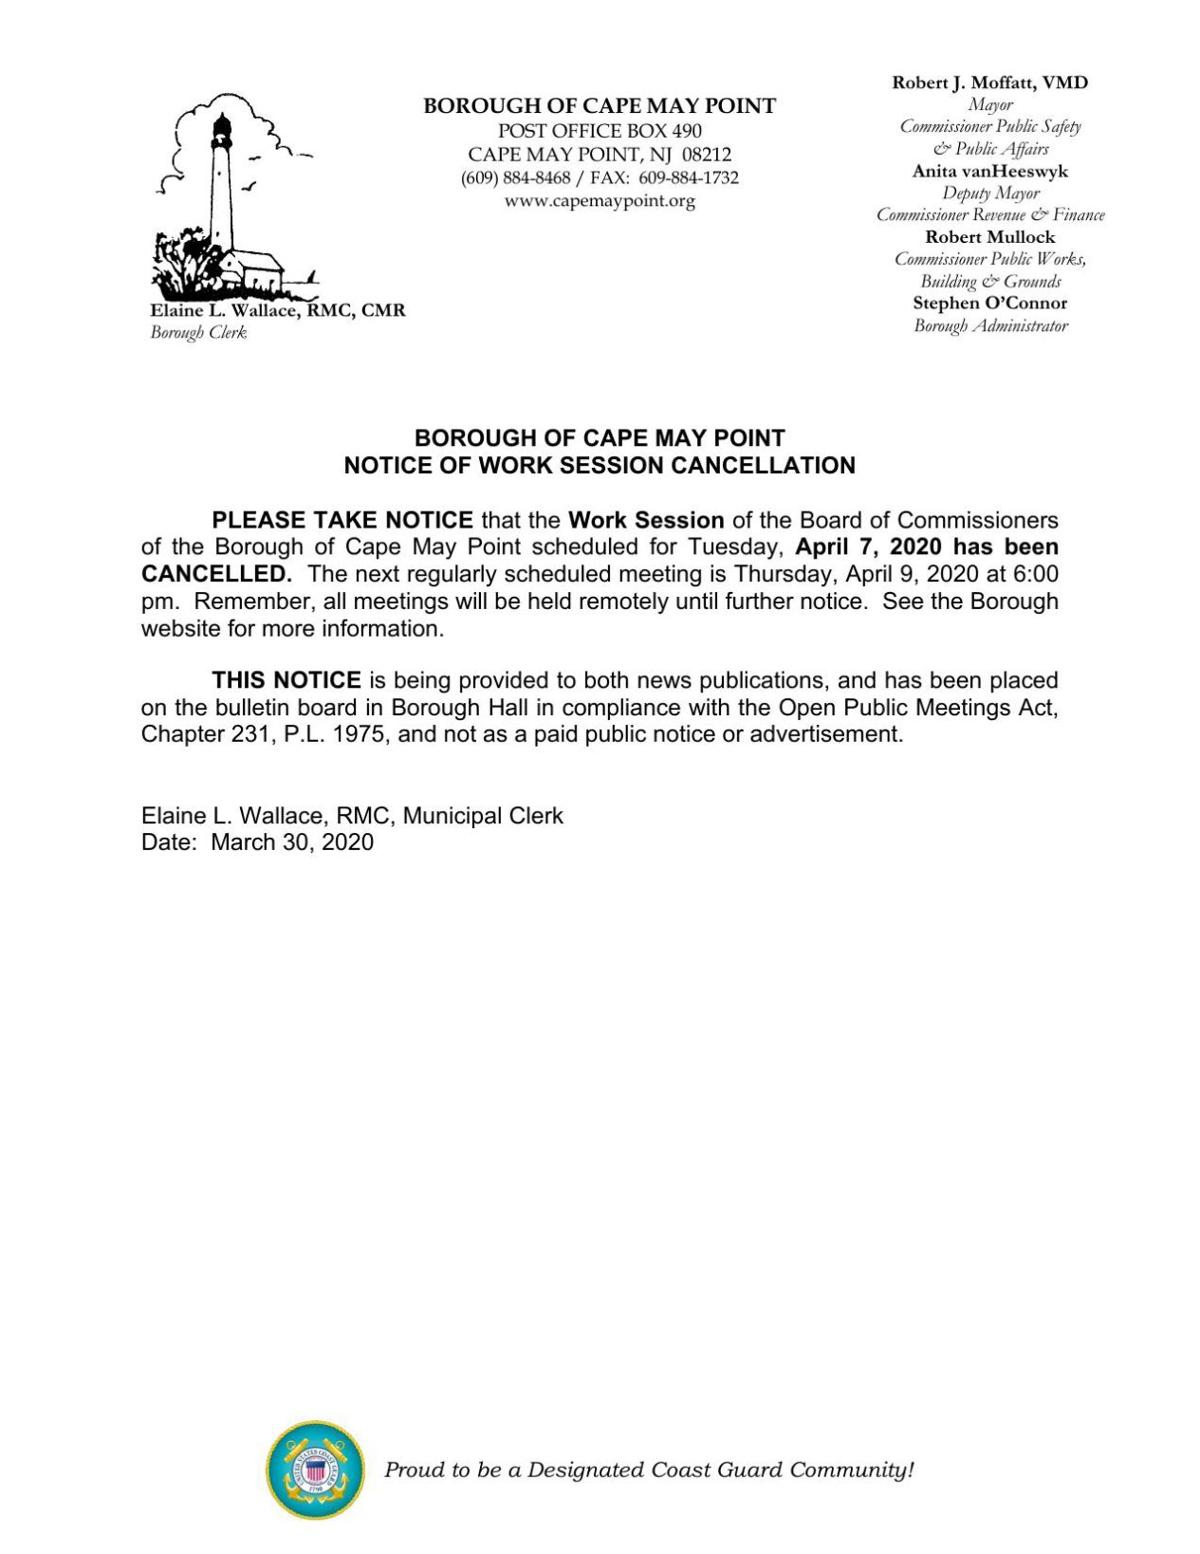 Cape May Point Meeting Cancellation April 7, 2020